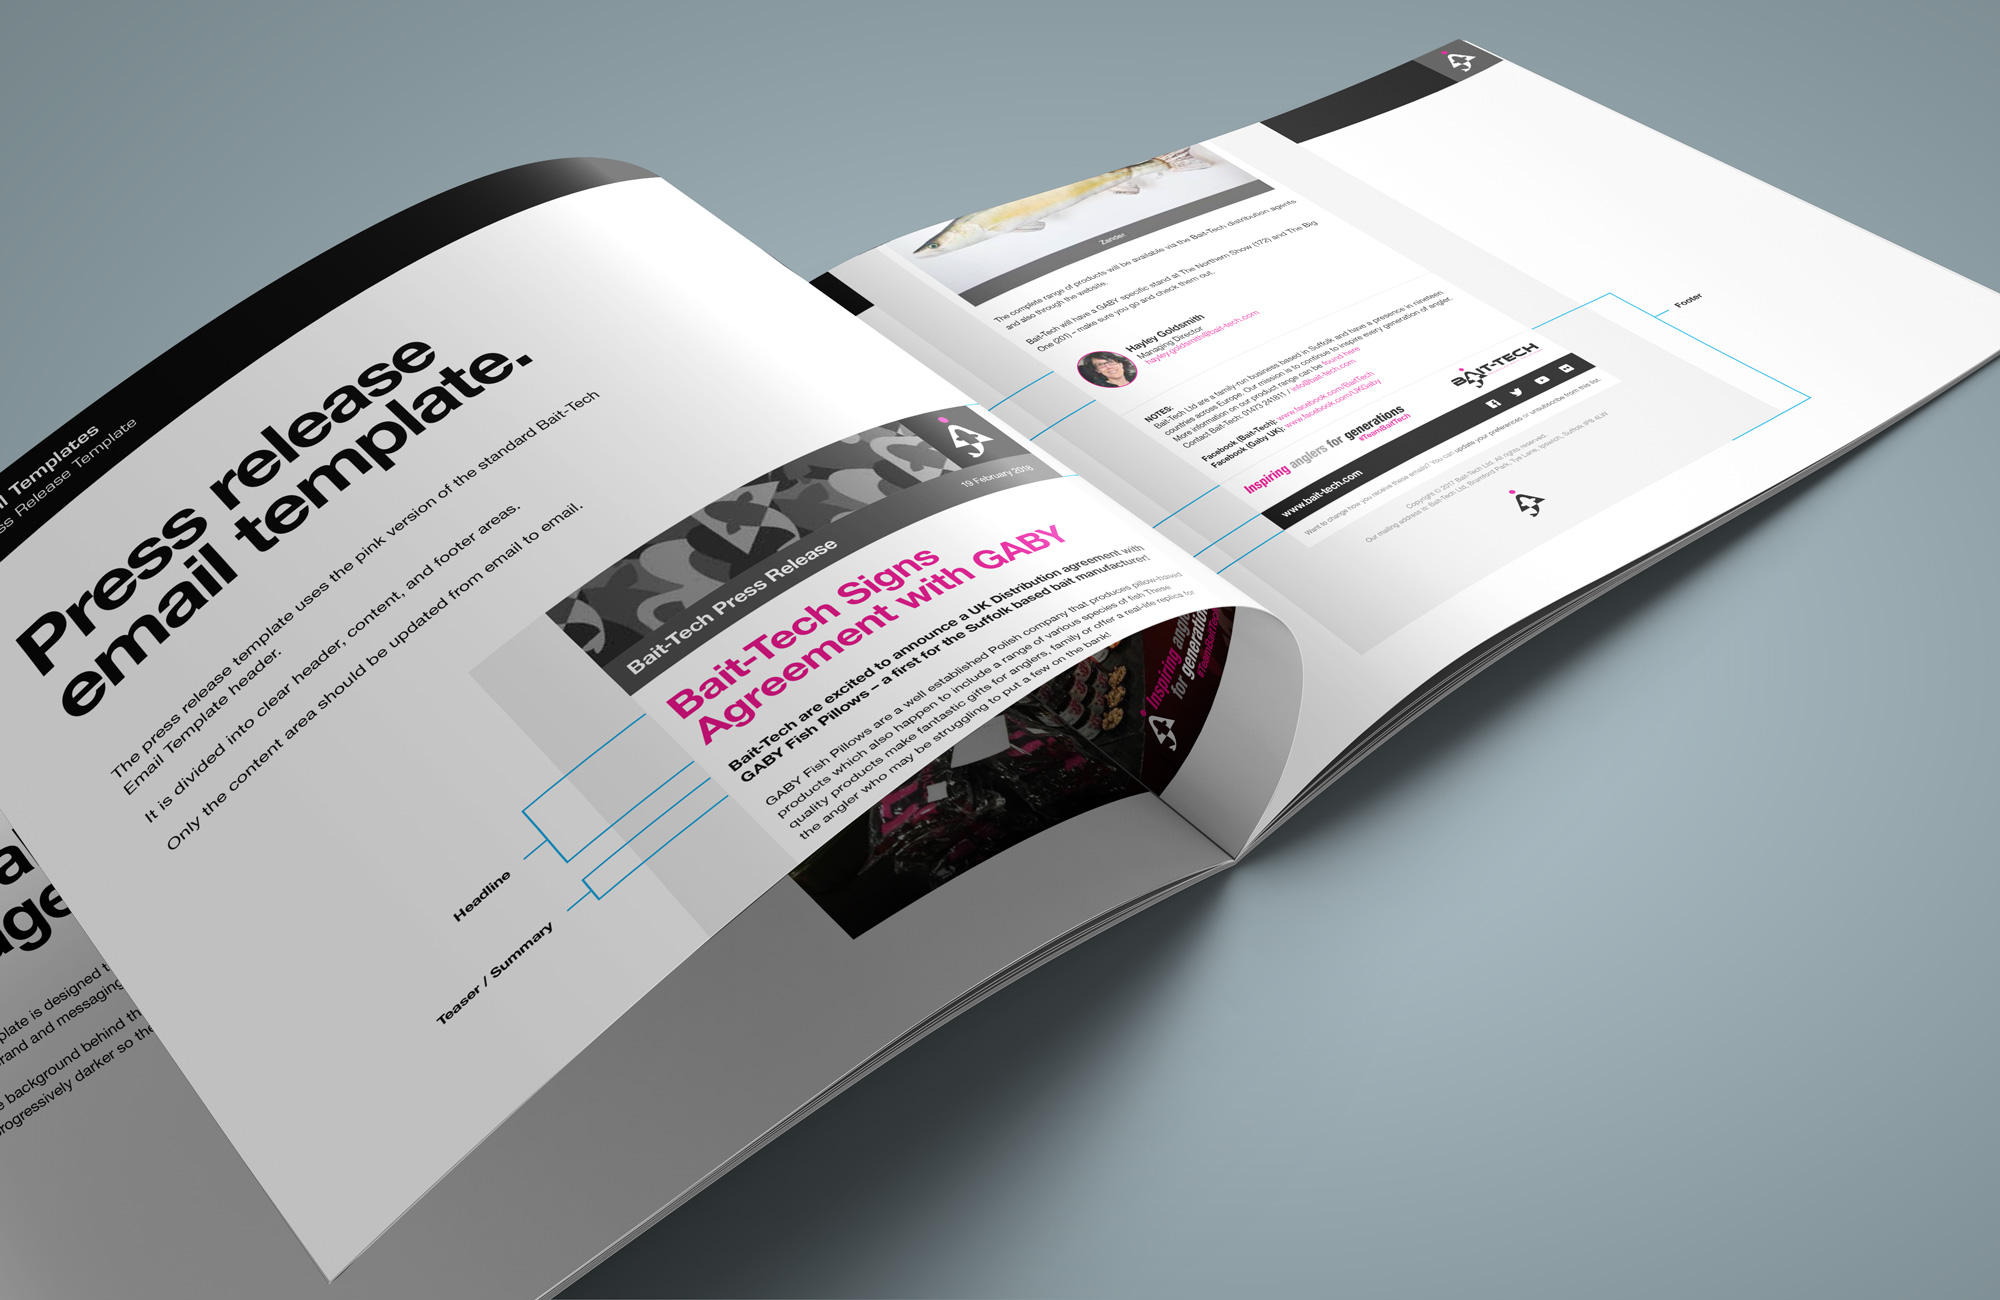 Design System Booklet to promote consistency of brand assets